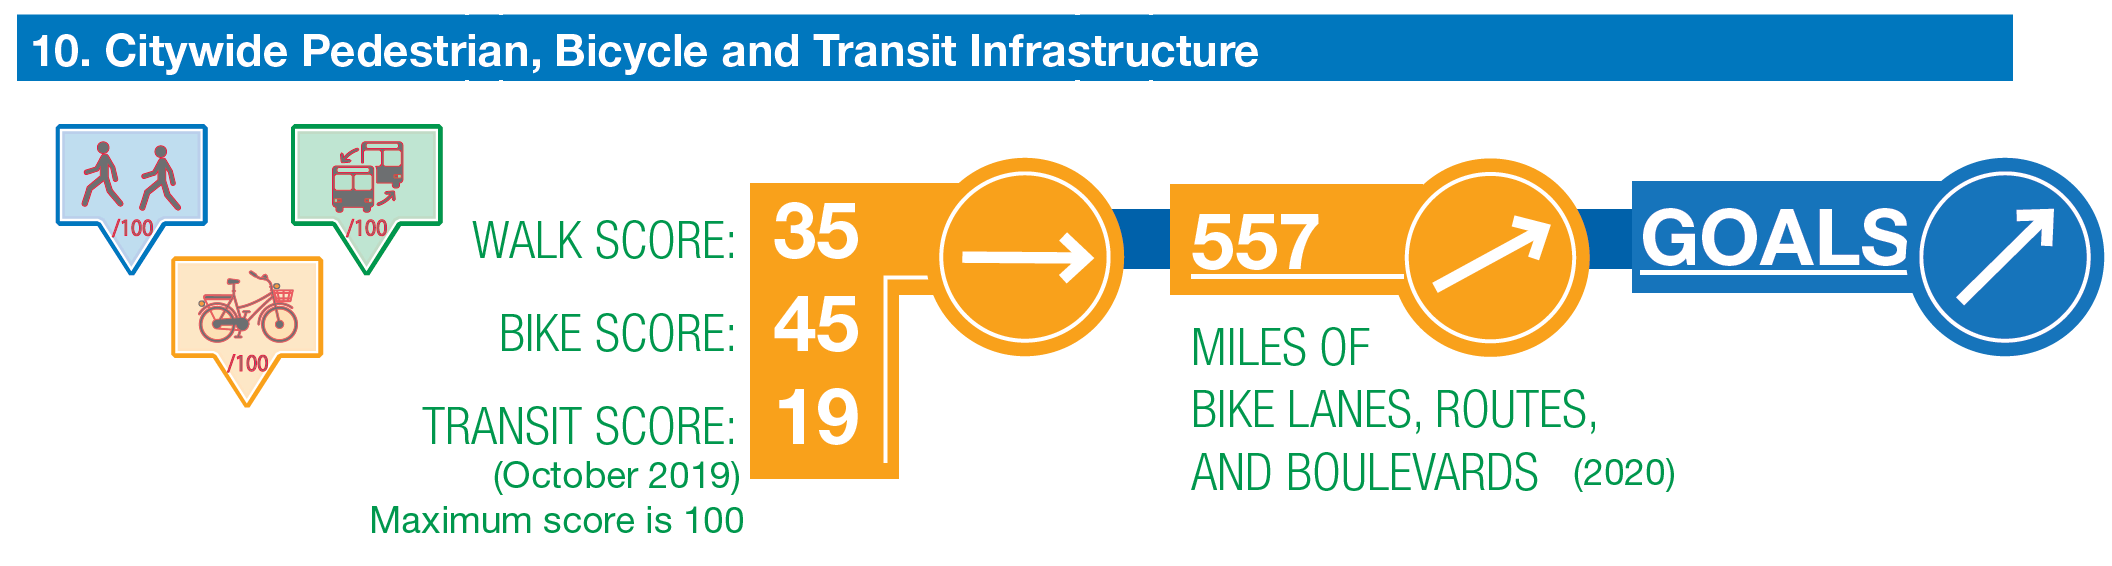 citywide pedestrian, bike, and transit infrastructure. walk score 35. bike score 45. transit score 19. all trending flat. miles of hike lanes, routes, and boulevards. trending up. goal for all to increase.